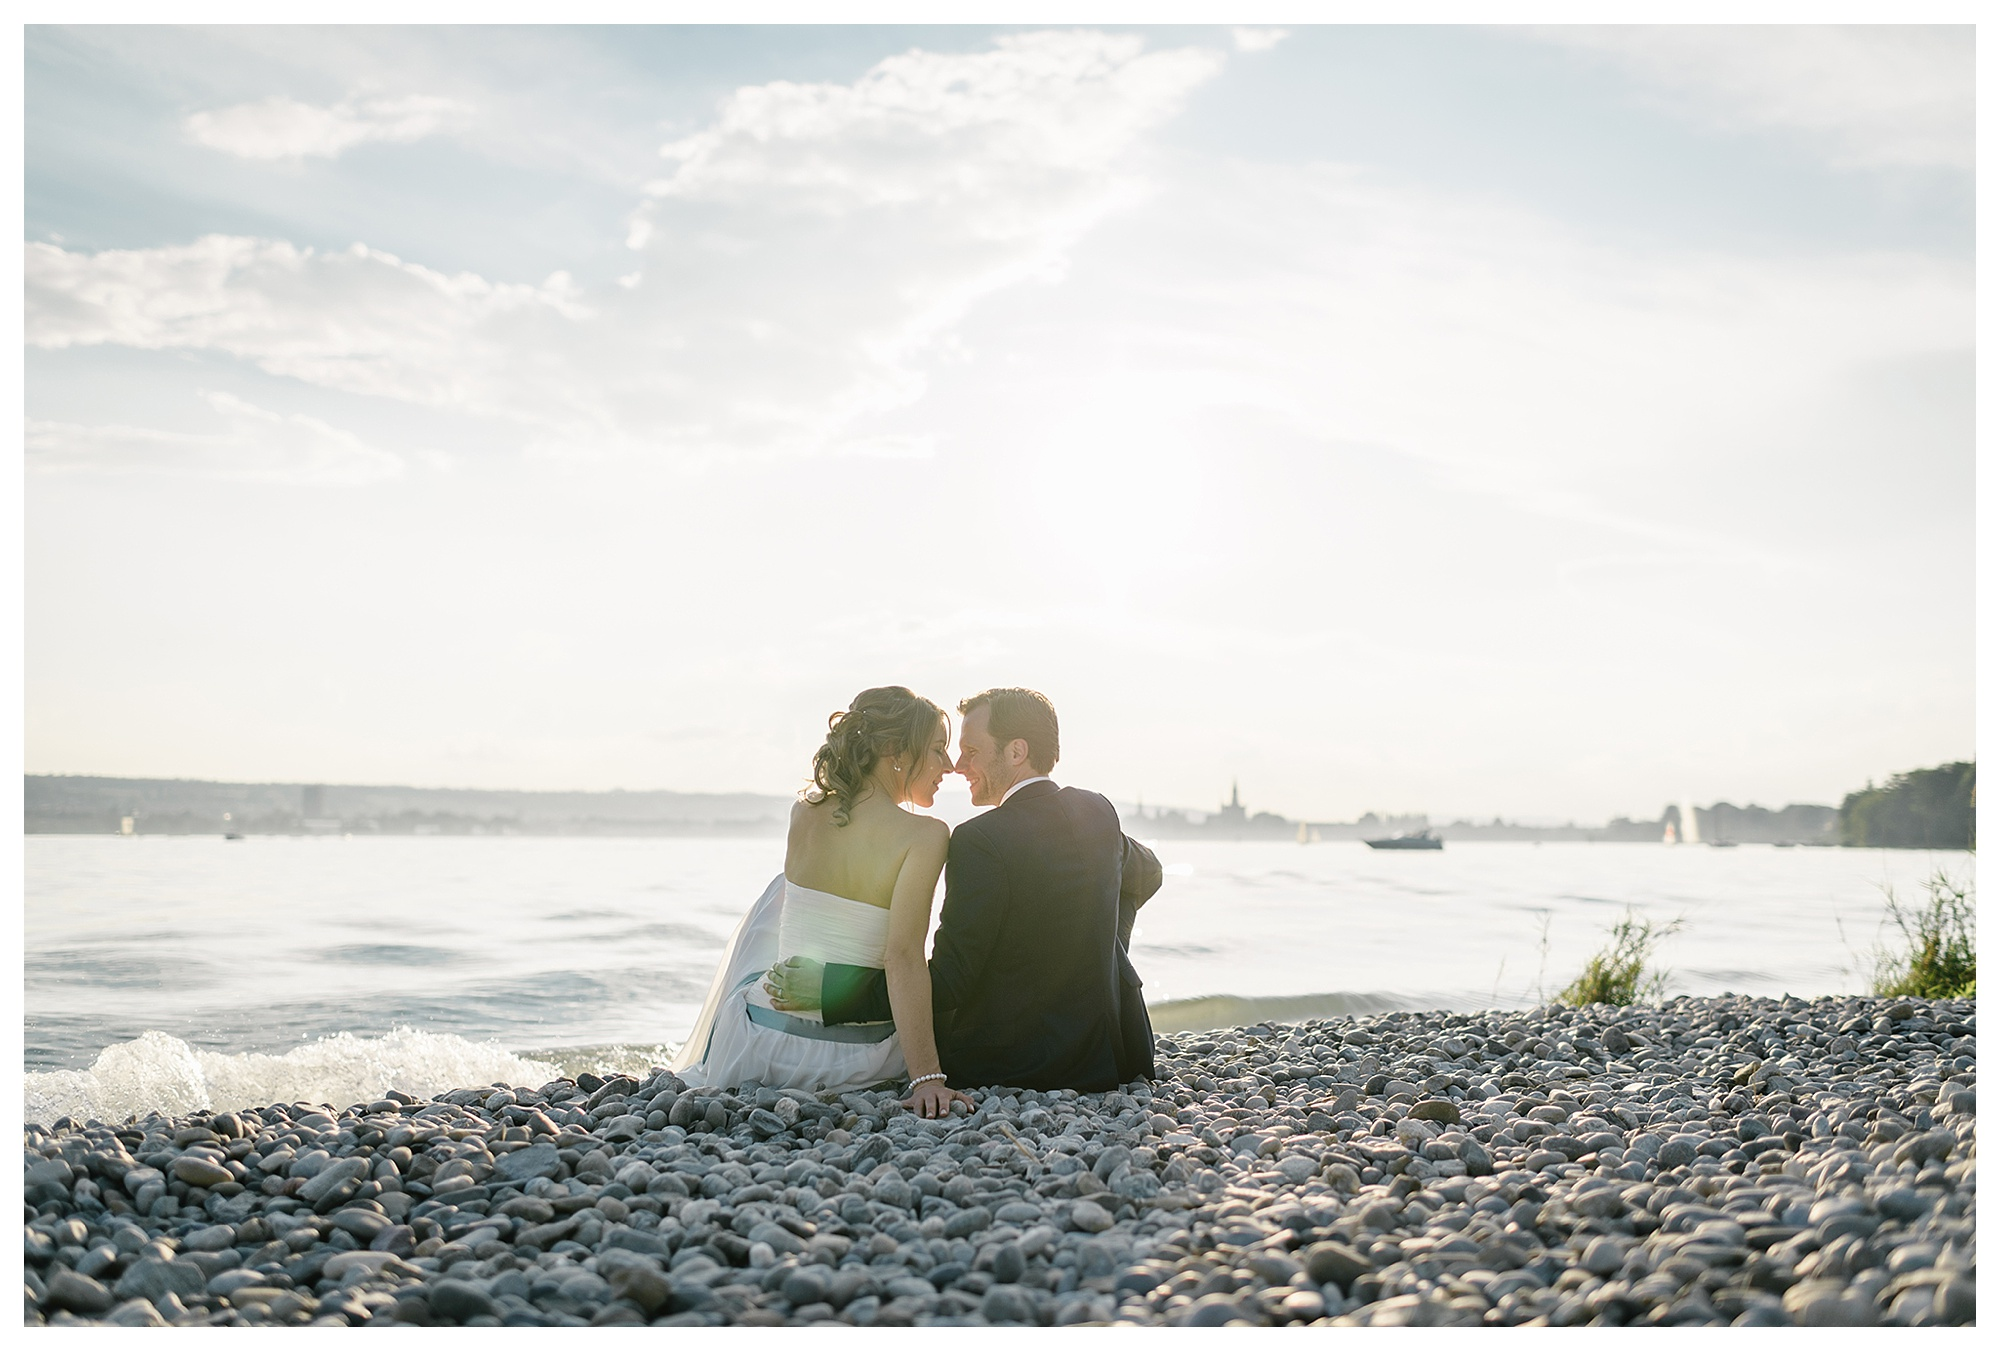 Fotograf Konstanz - Hochzeitsreportage Konstanz Raphael Nicole Elmar Feuerbacher Photography Hochzeit Portrait 52 - Wedding in Constance at Lake of Constance  - 38 -